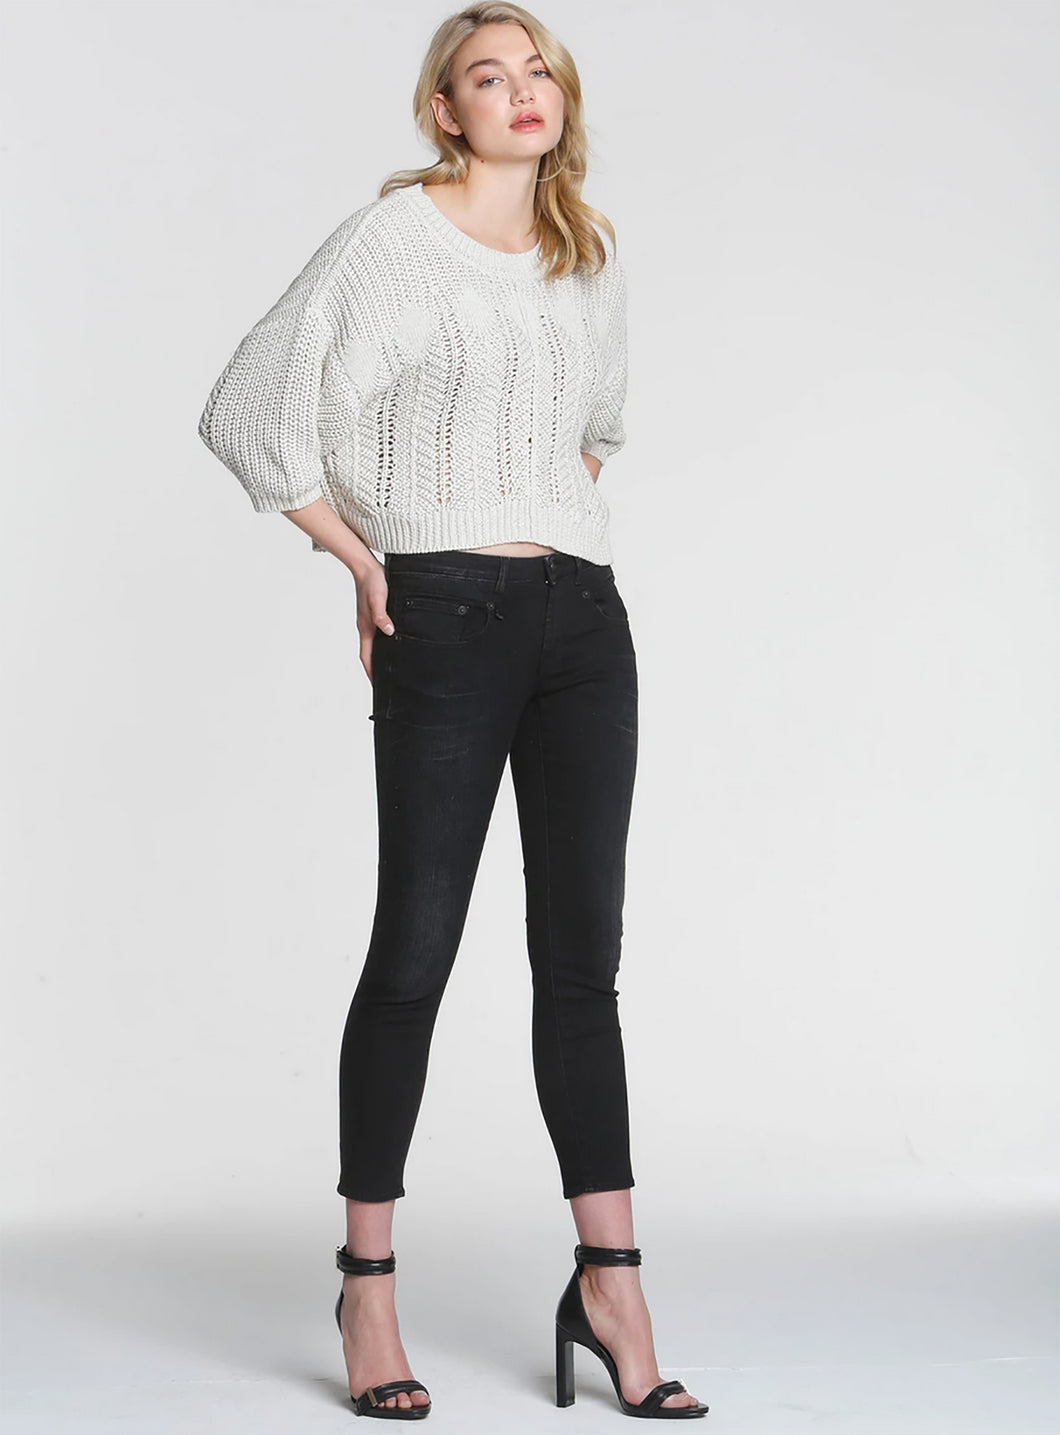 Label + Thread Diamond Cable Sweater